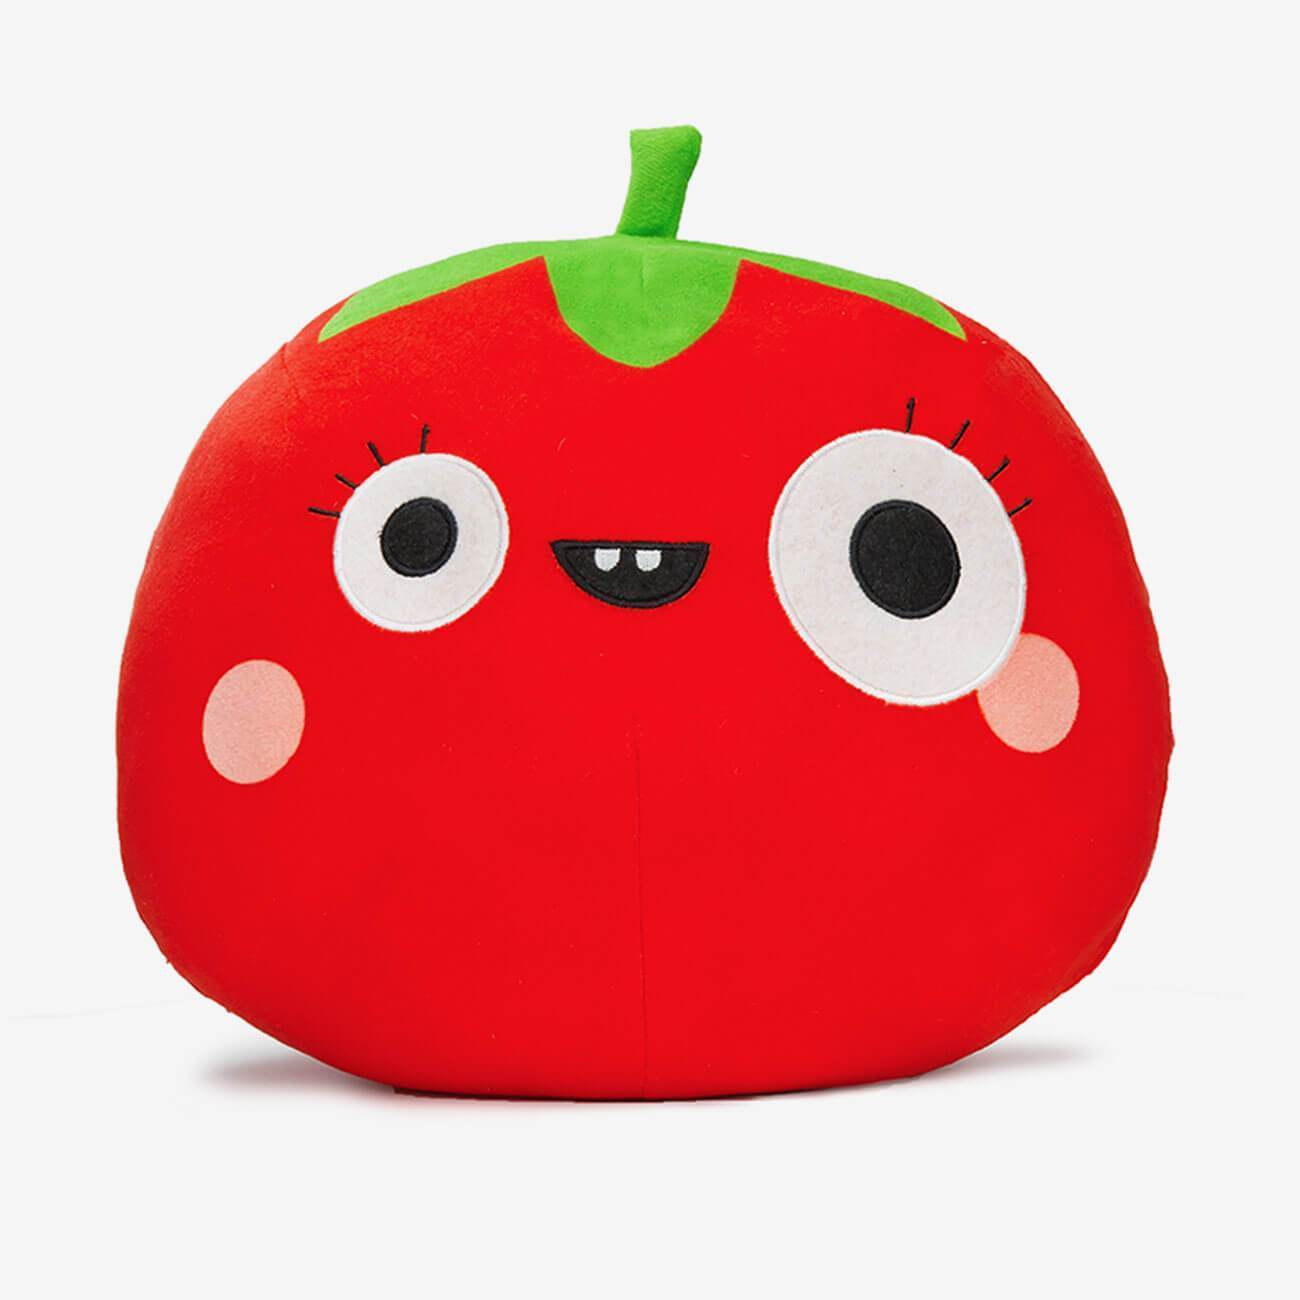 Plush Dolls - Vegan Tomato Toy - Plushie